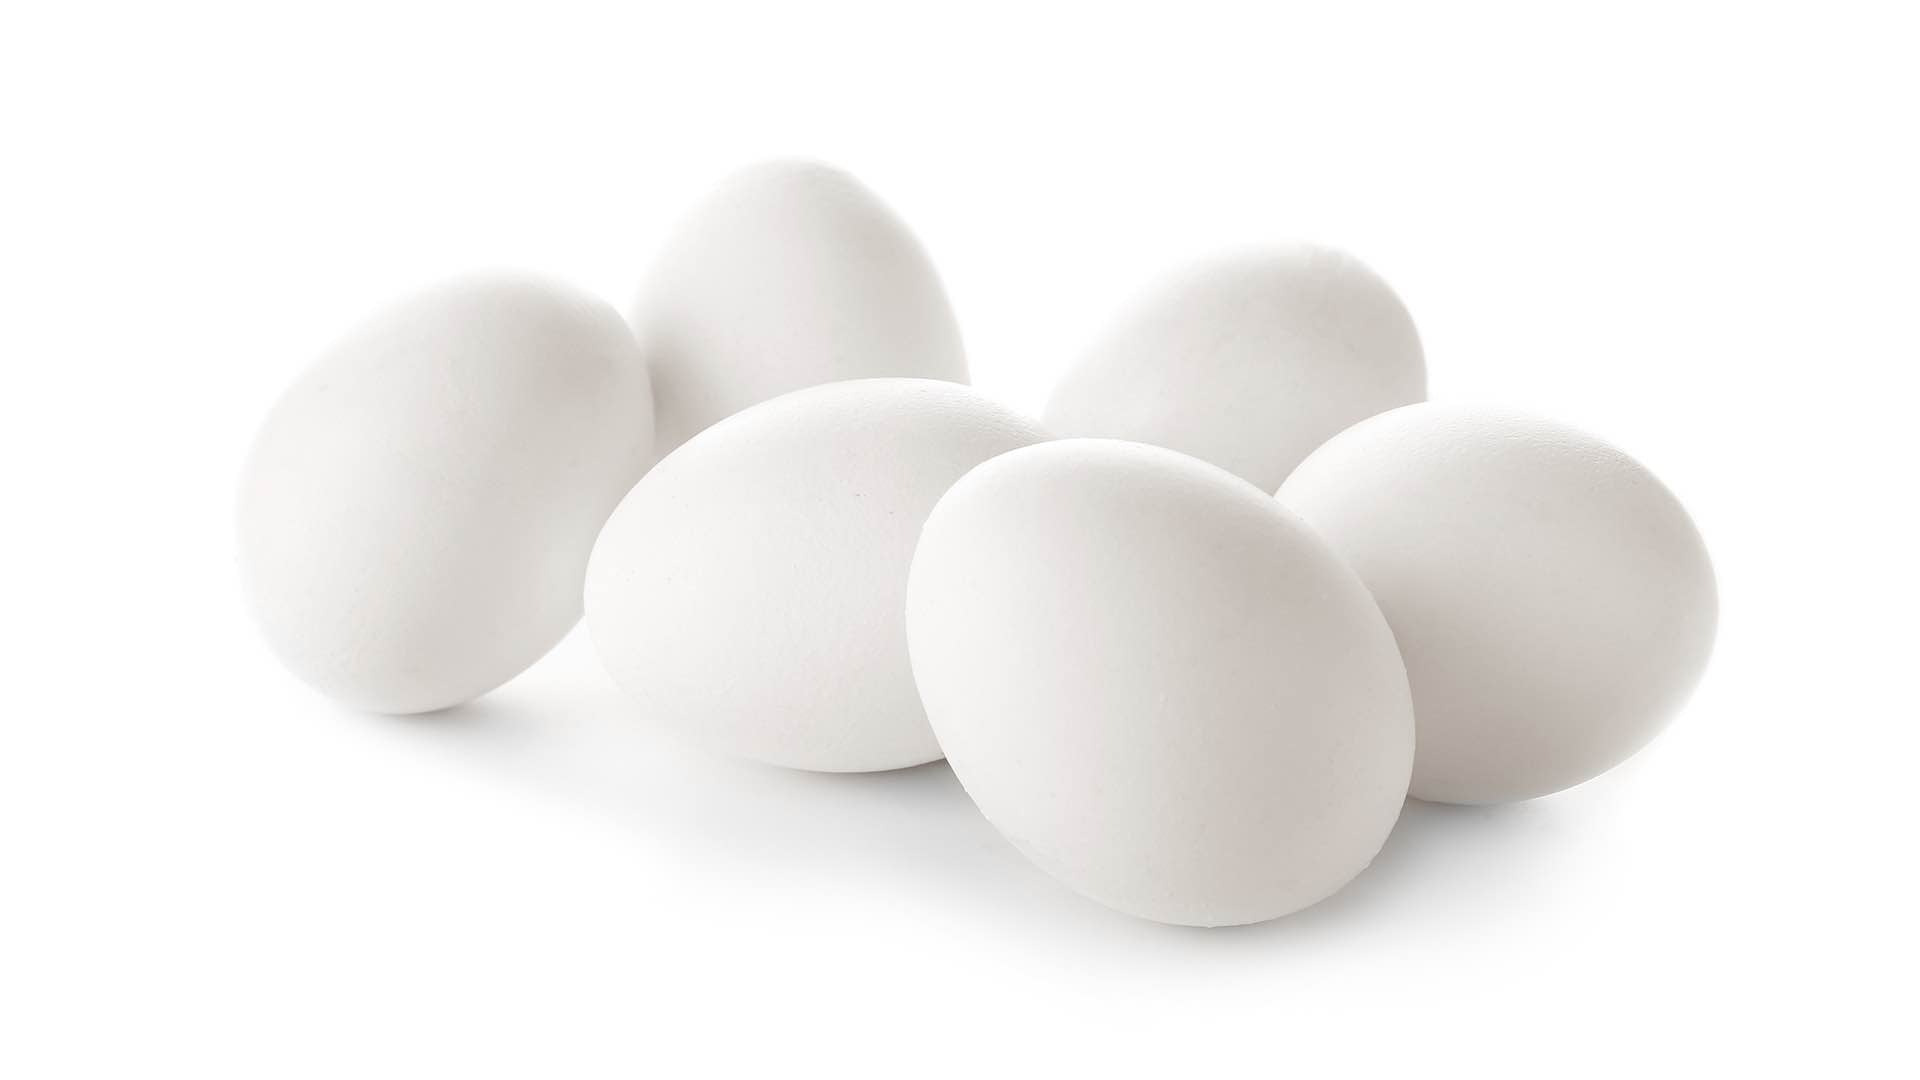 egg white clouds